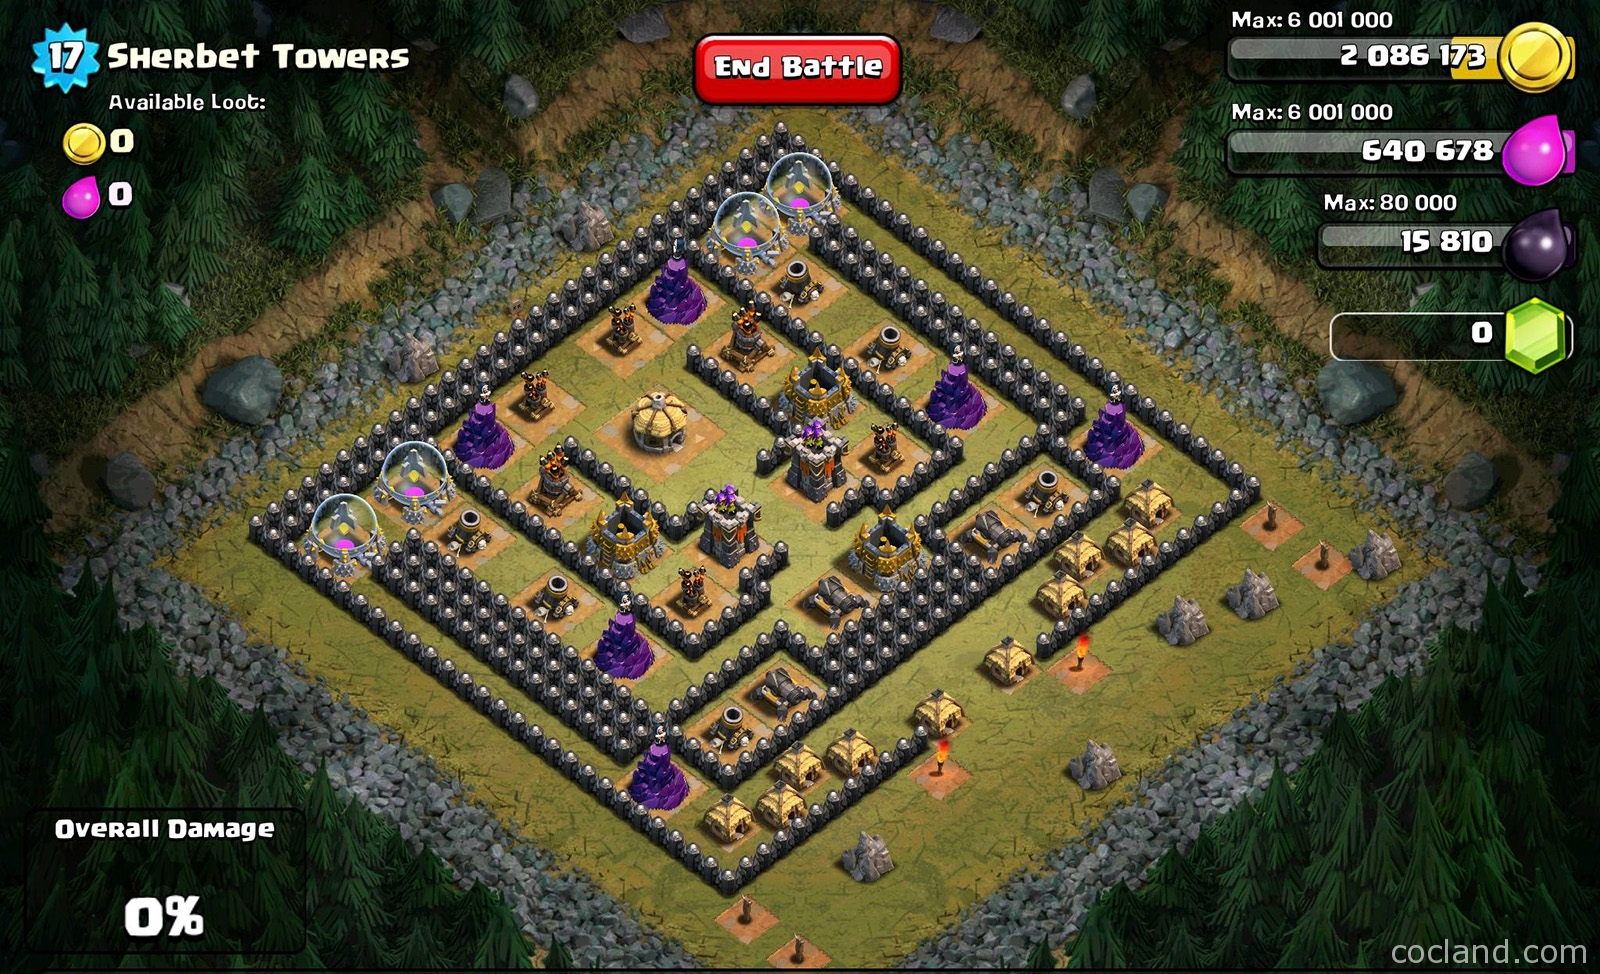 Defeat the Sherbet Towers with TH7 troops | Clash of Clans Land